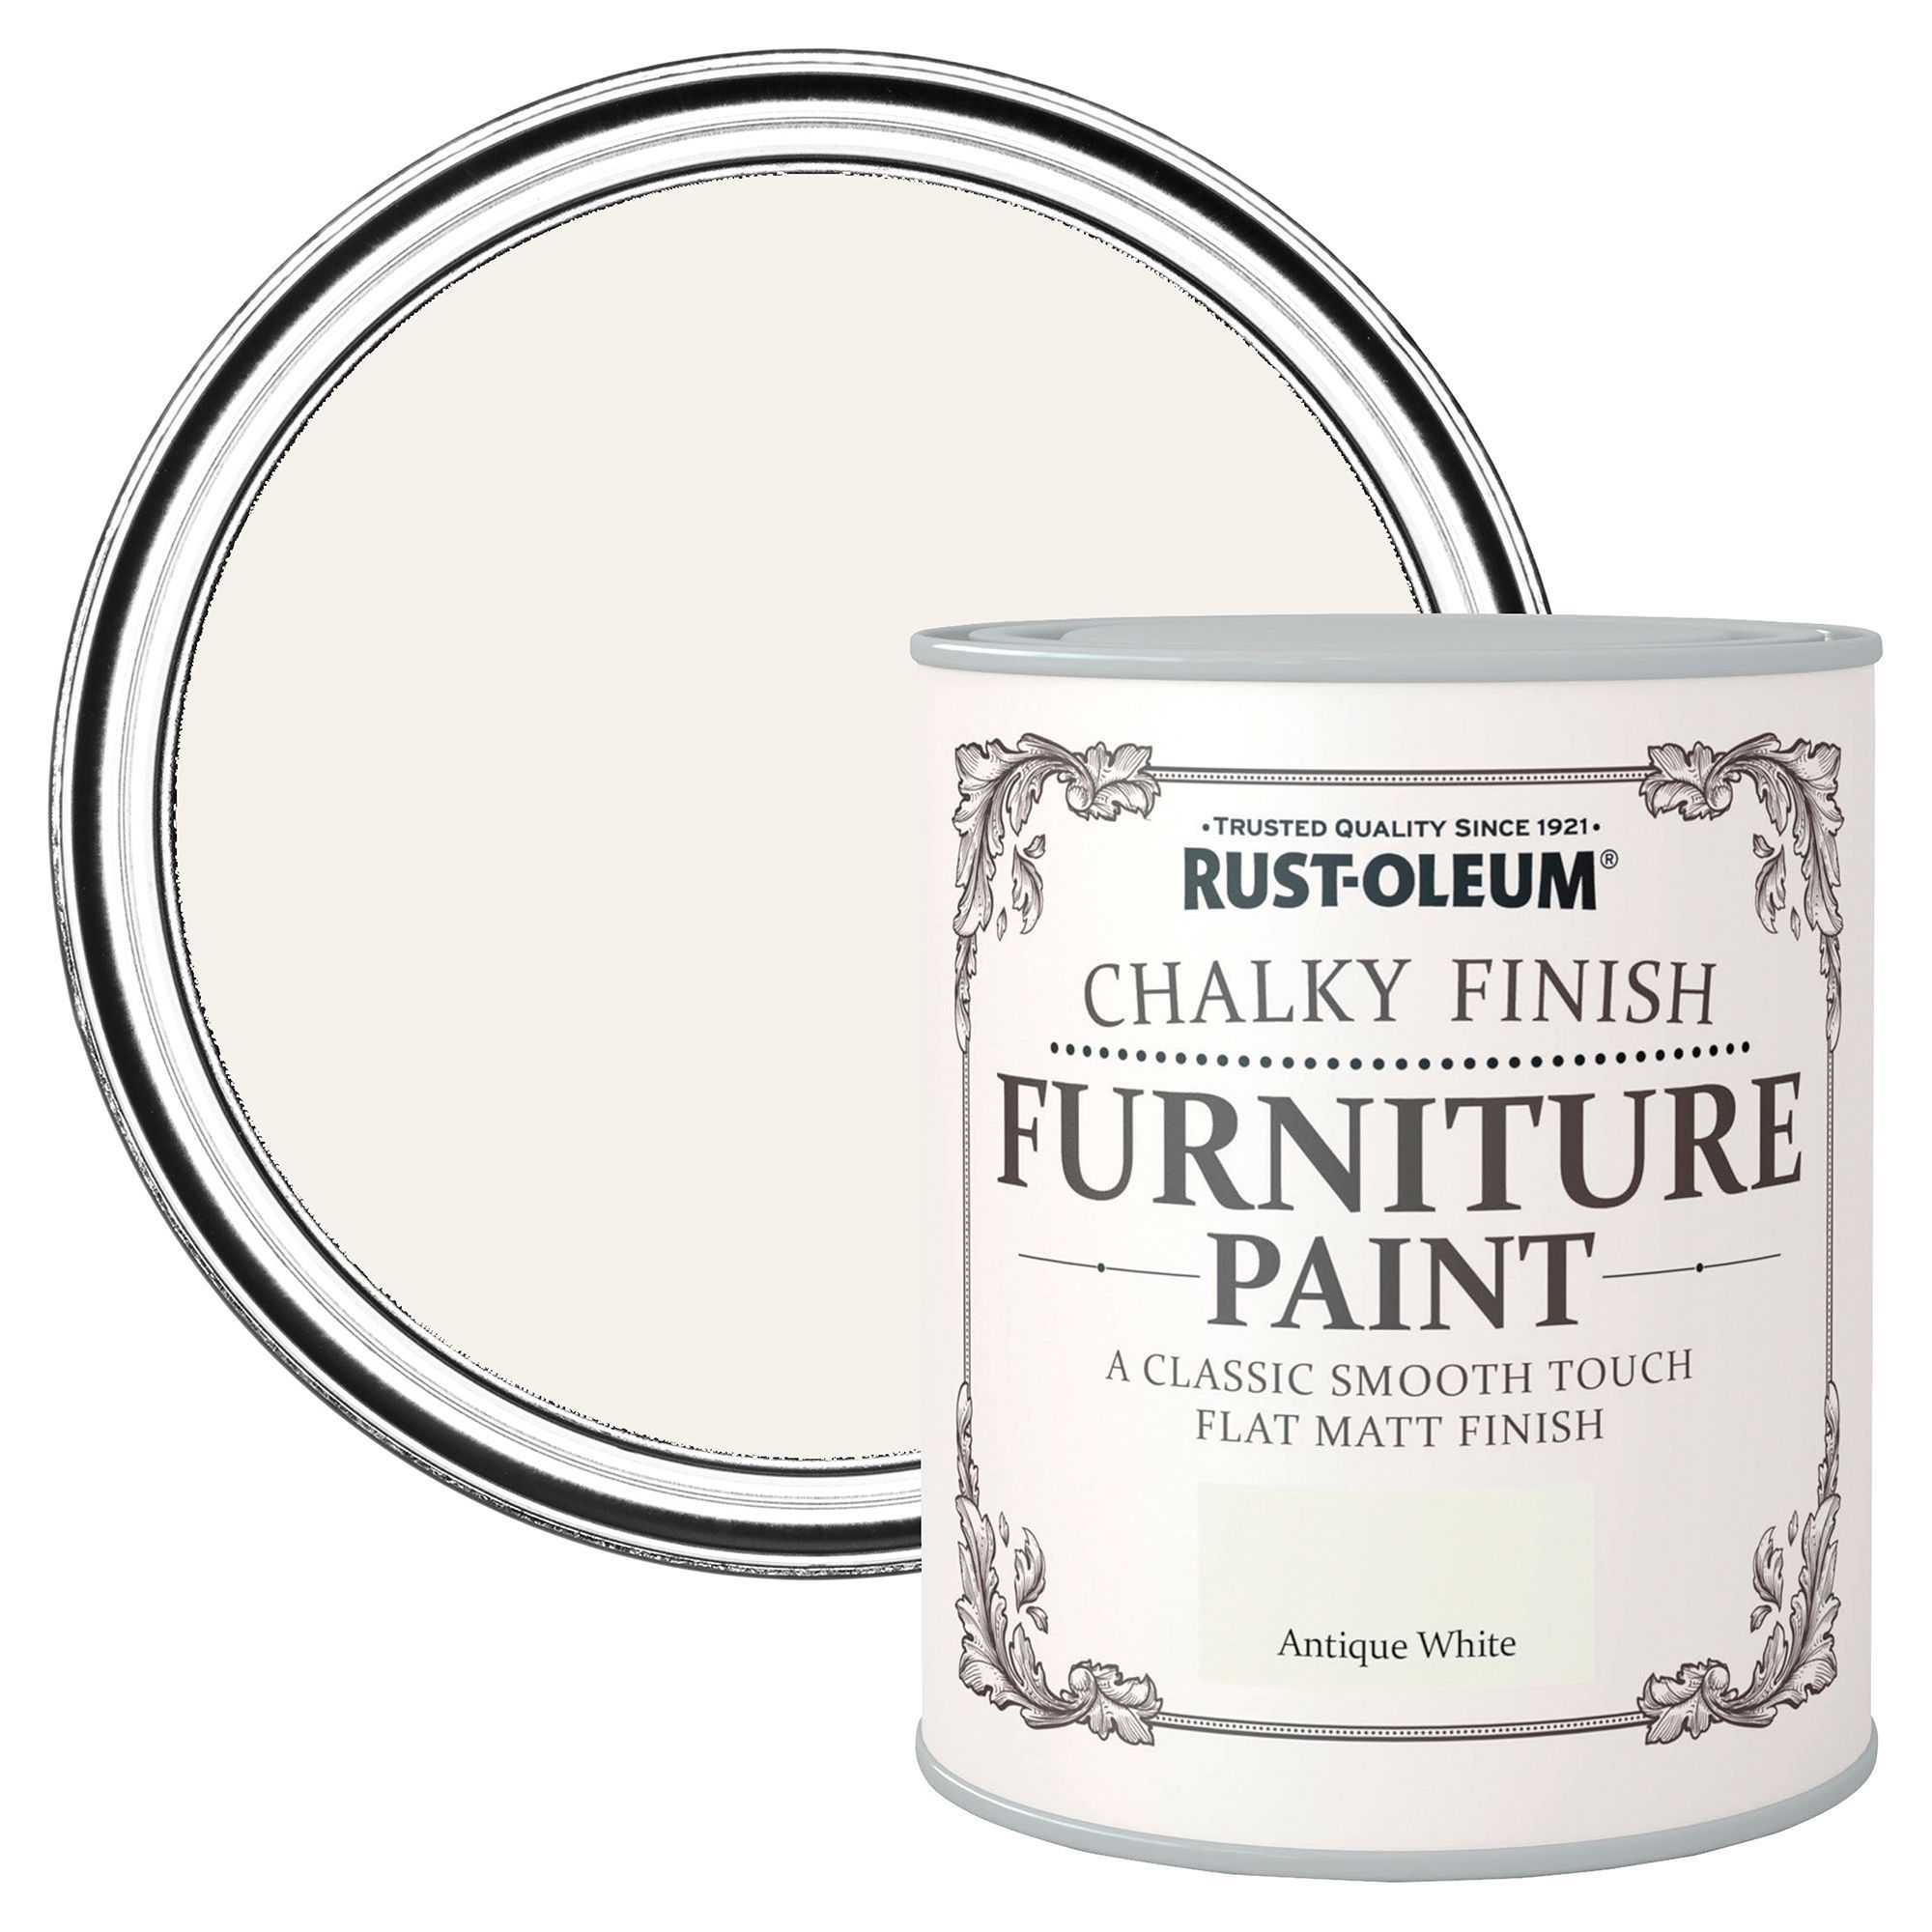 Rust-oleum Antique White Flat Matt Furniture Paint 2.5l